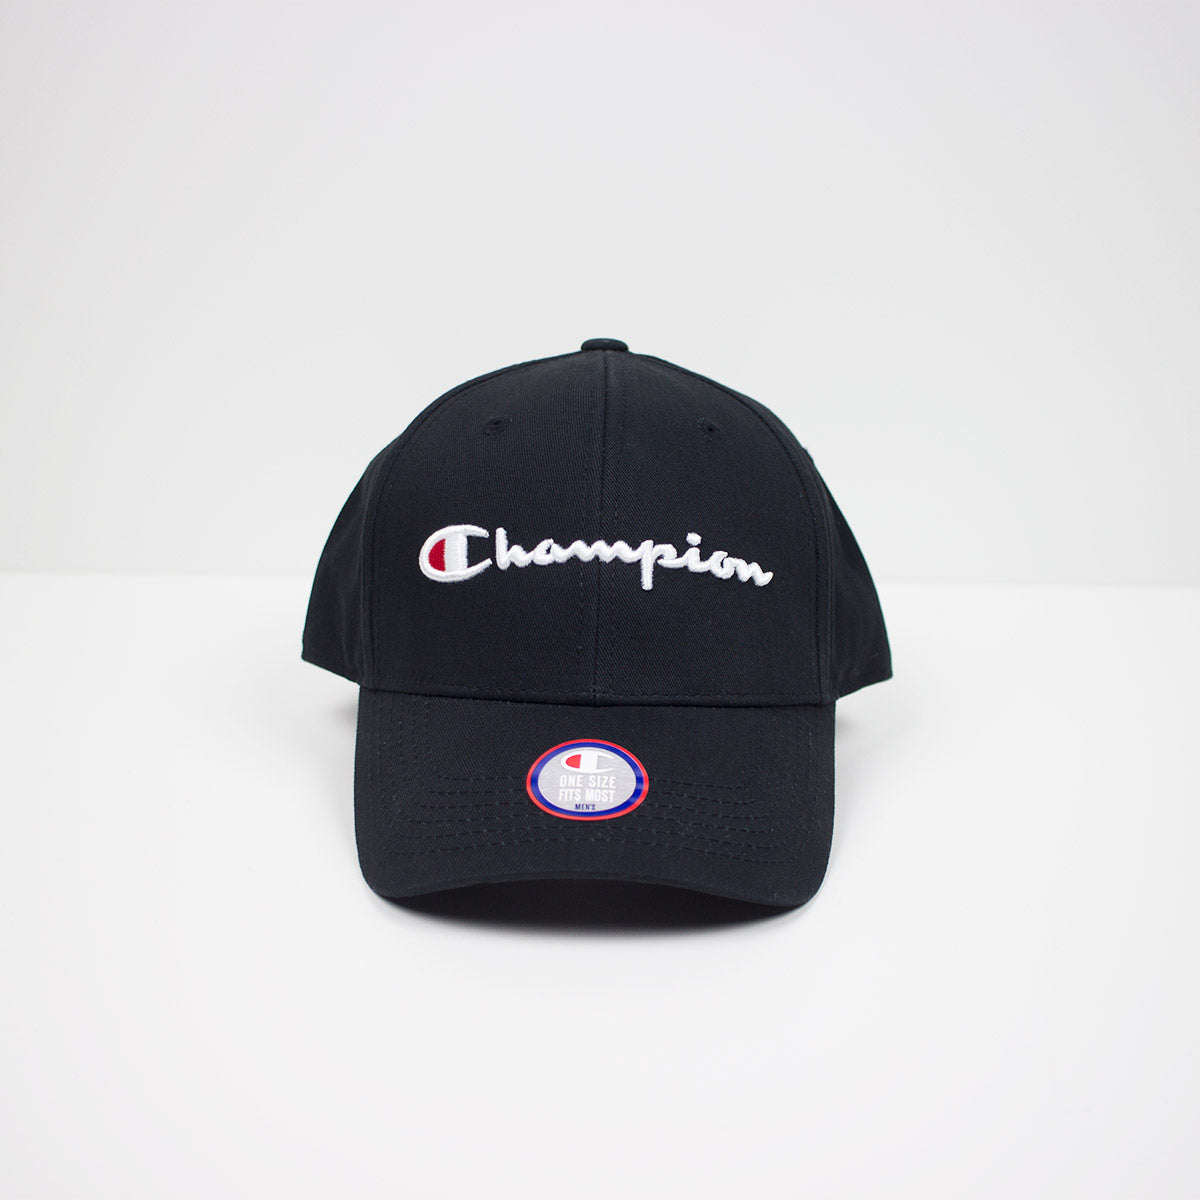 087eebcc422 Champion Classic Twill Strapback Dad Hat